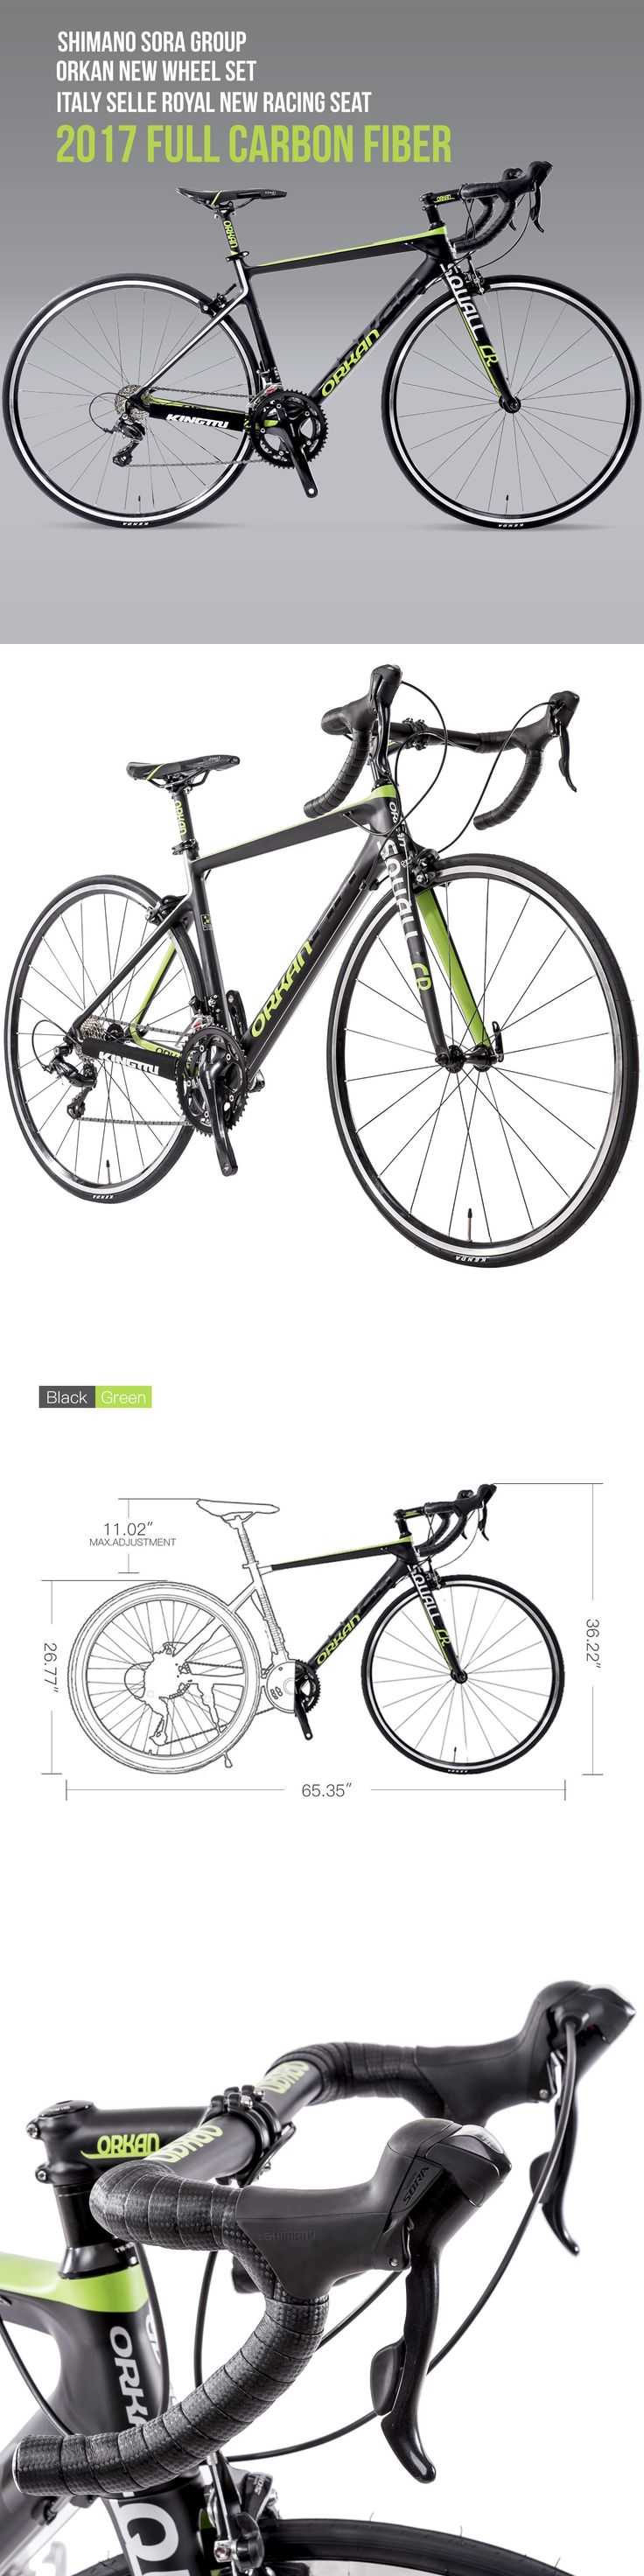 bicycles: Racing Bicycle 700C Road 18 Speed Bike Full Carbon Fiber Frame Shimano Cycling -> BUY IT NOW ONLY: $599 on eBay!